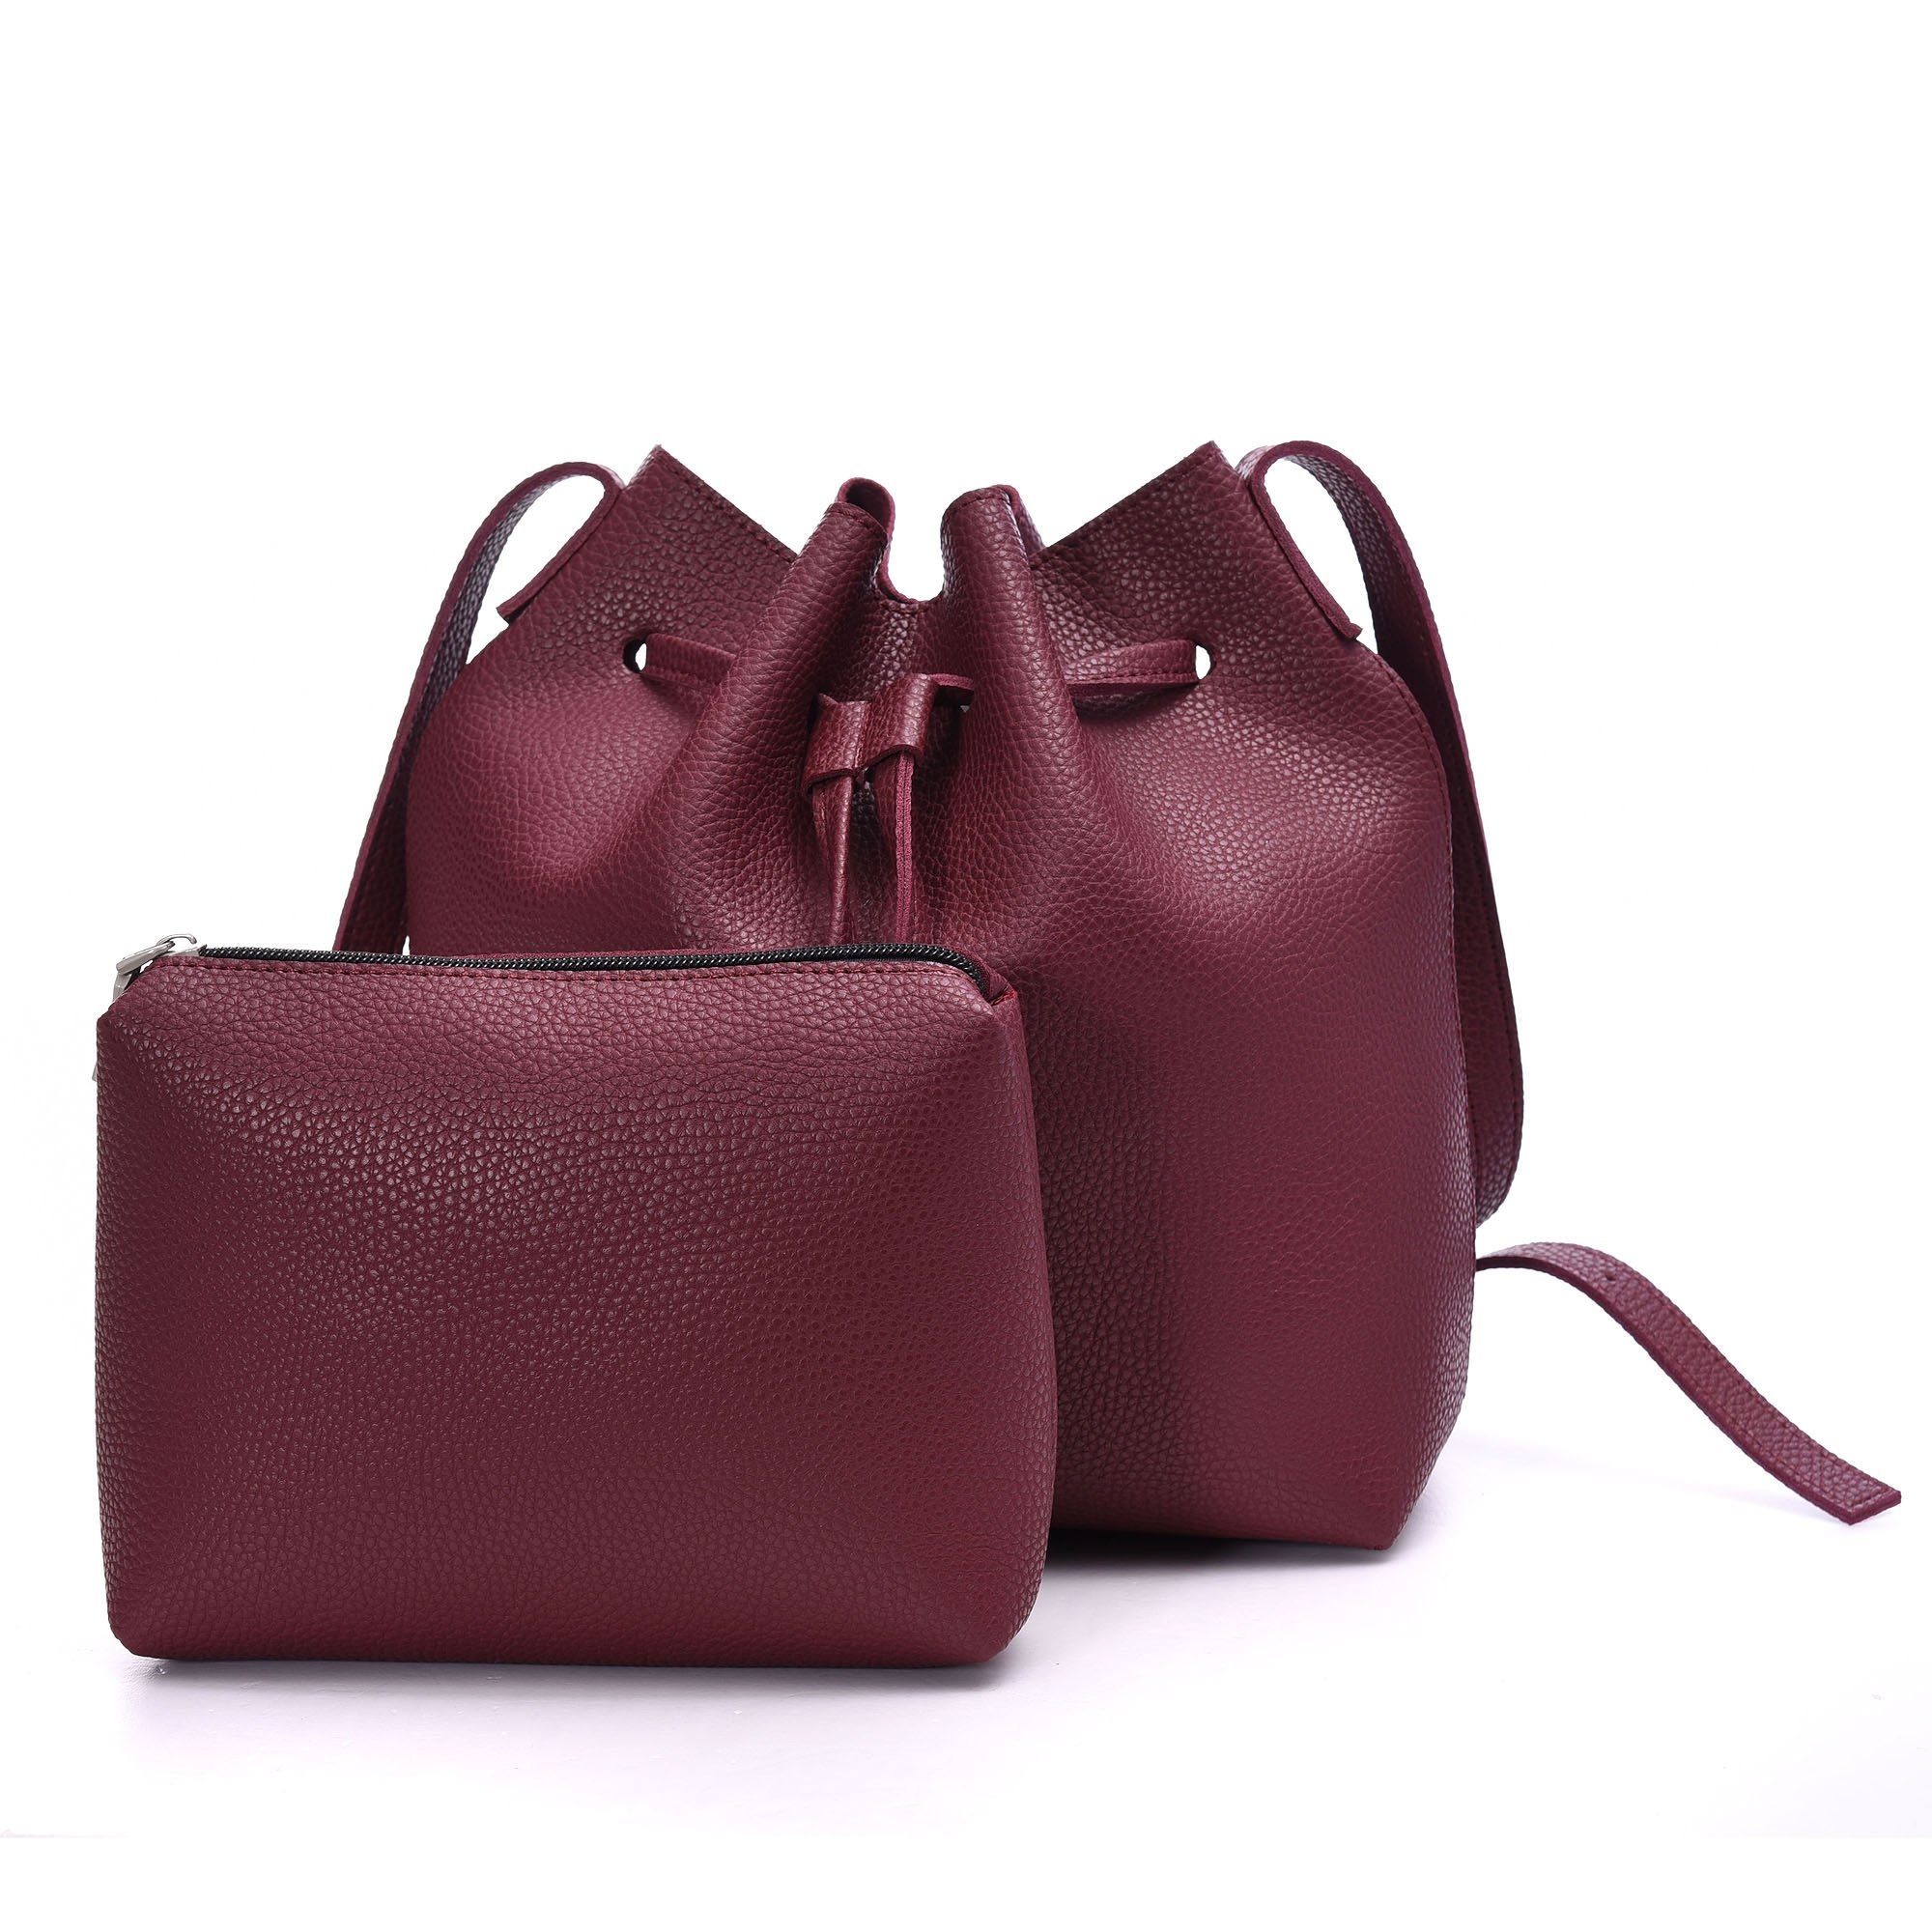 Drawstring Bucket Bags 2 Pieces Set, Artmis Women Small Cross-body Purses PU Leather (Wine red)